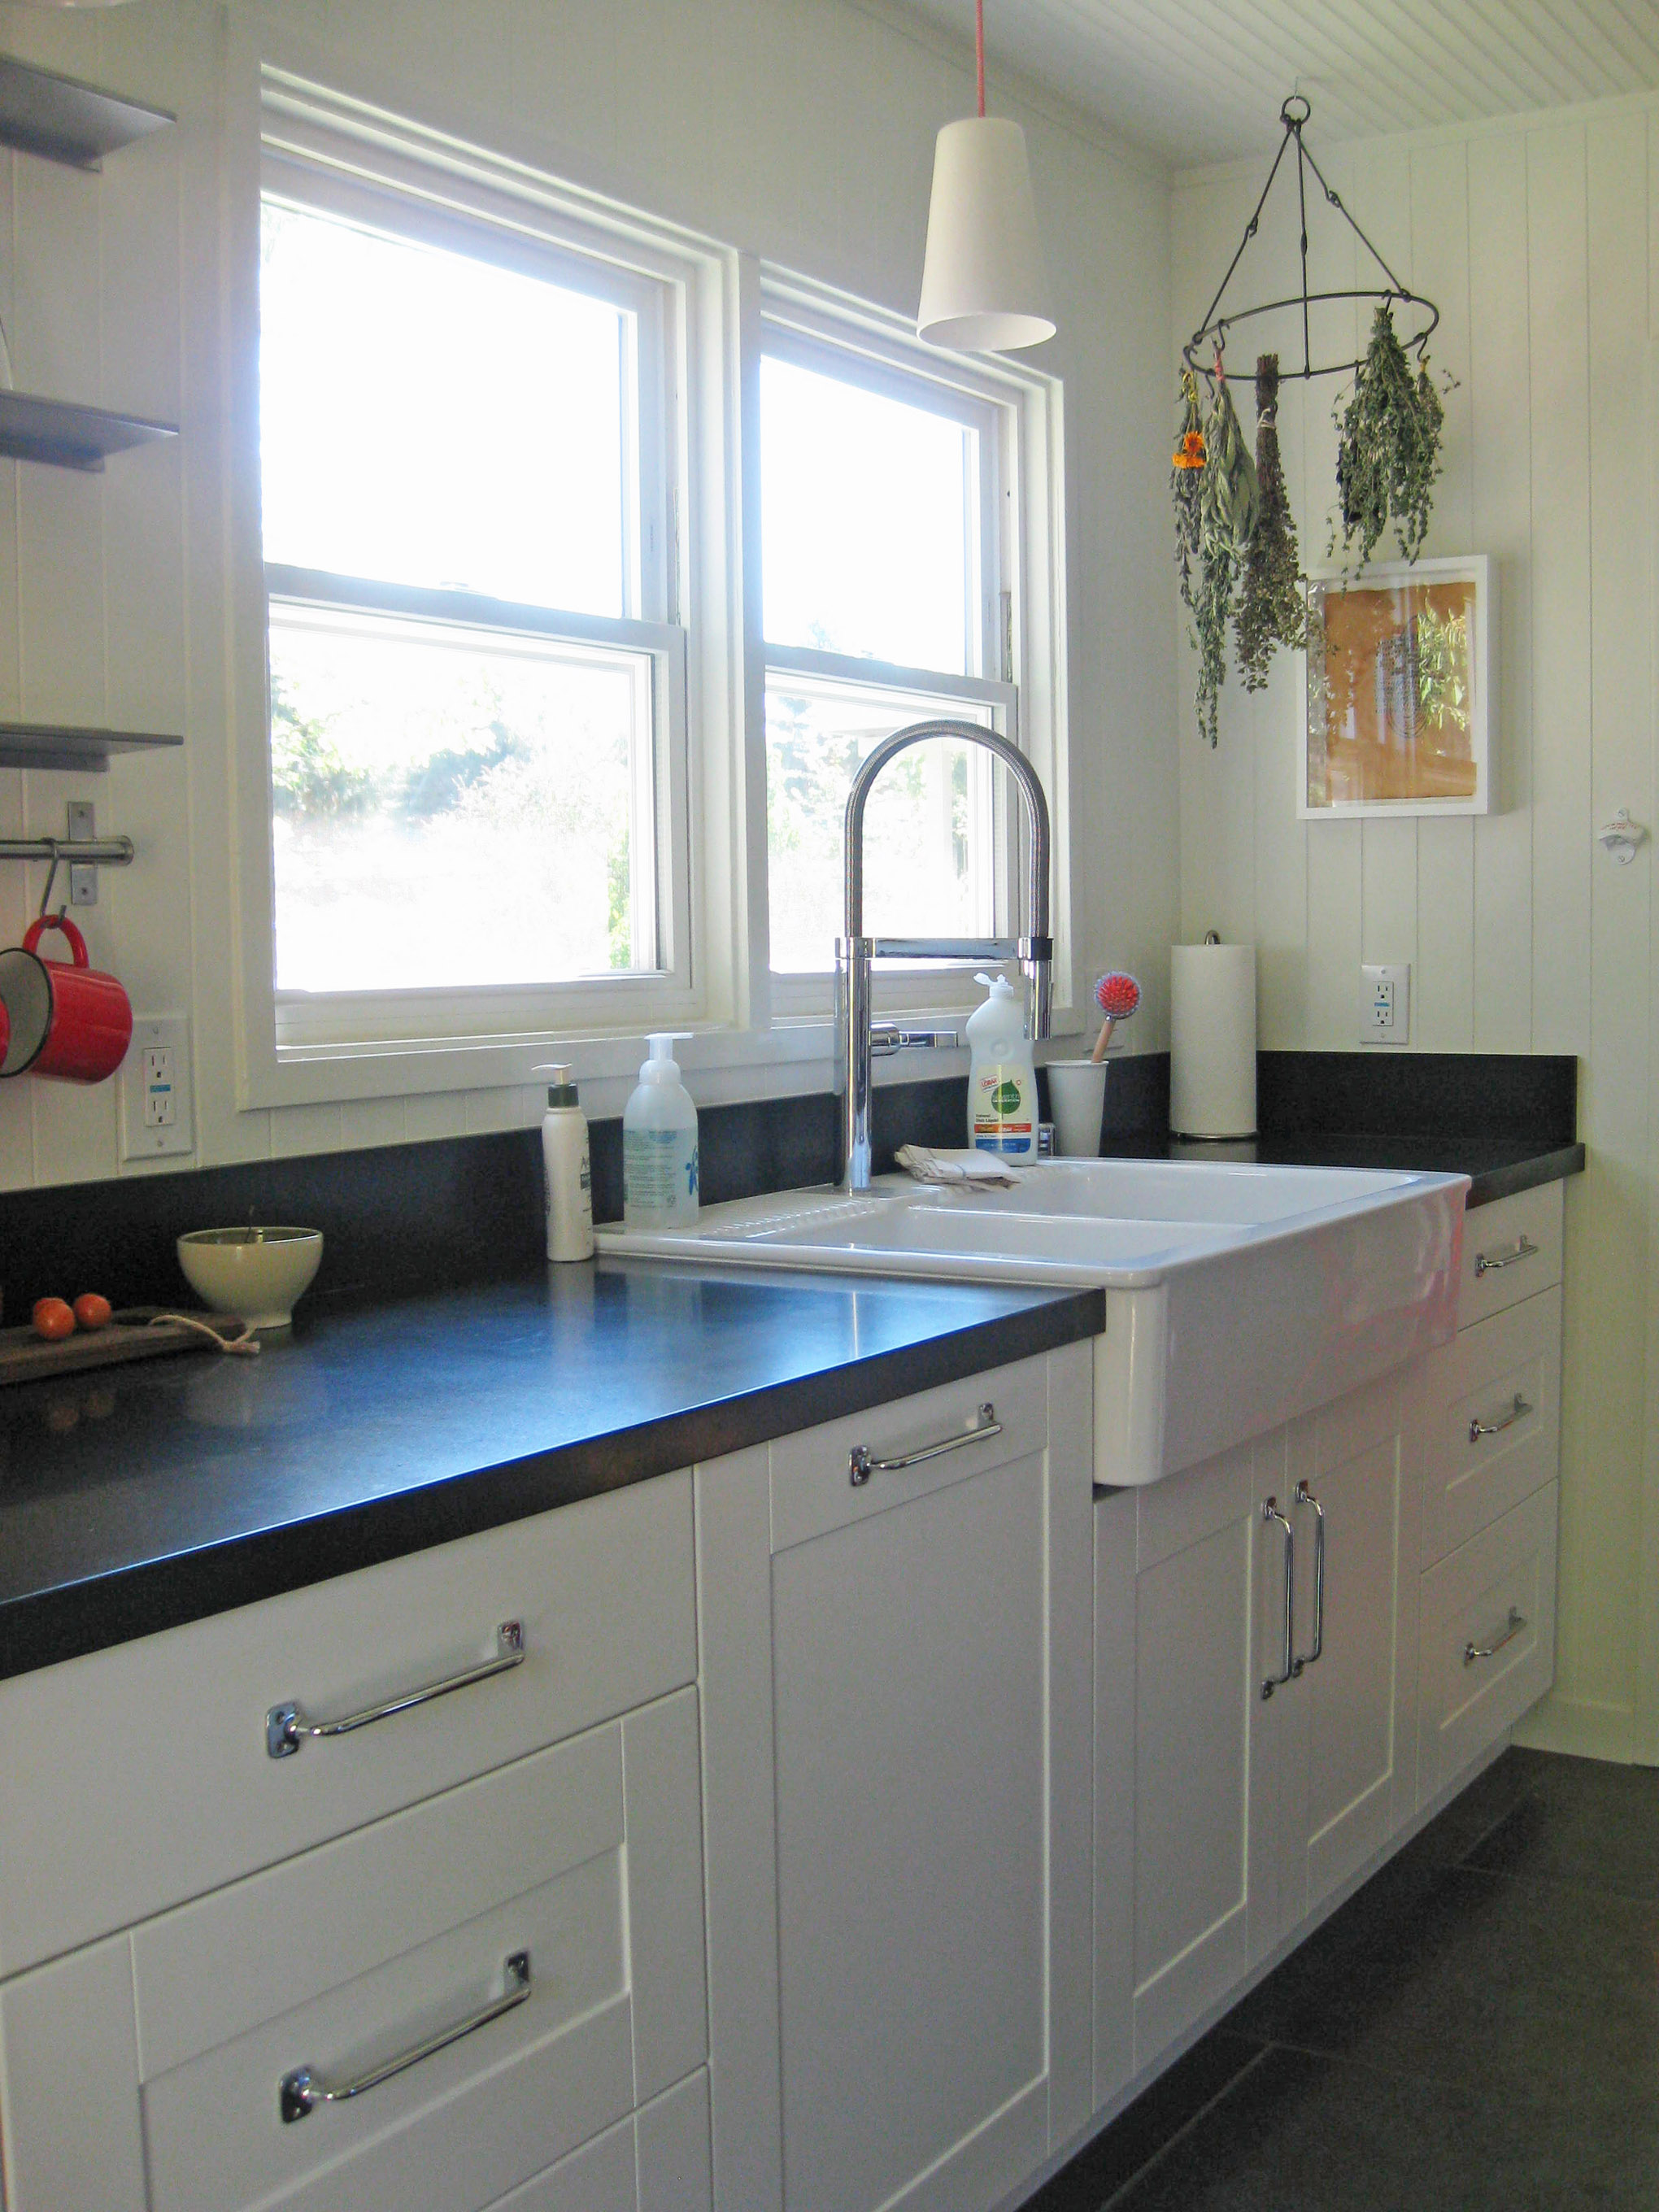 South wall sink overall.jpg